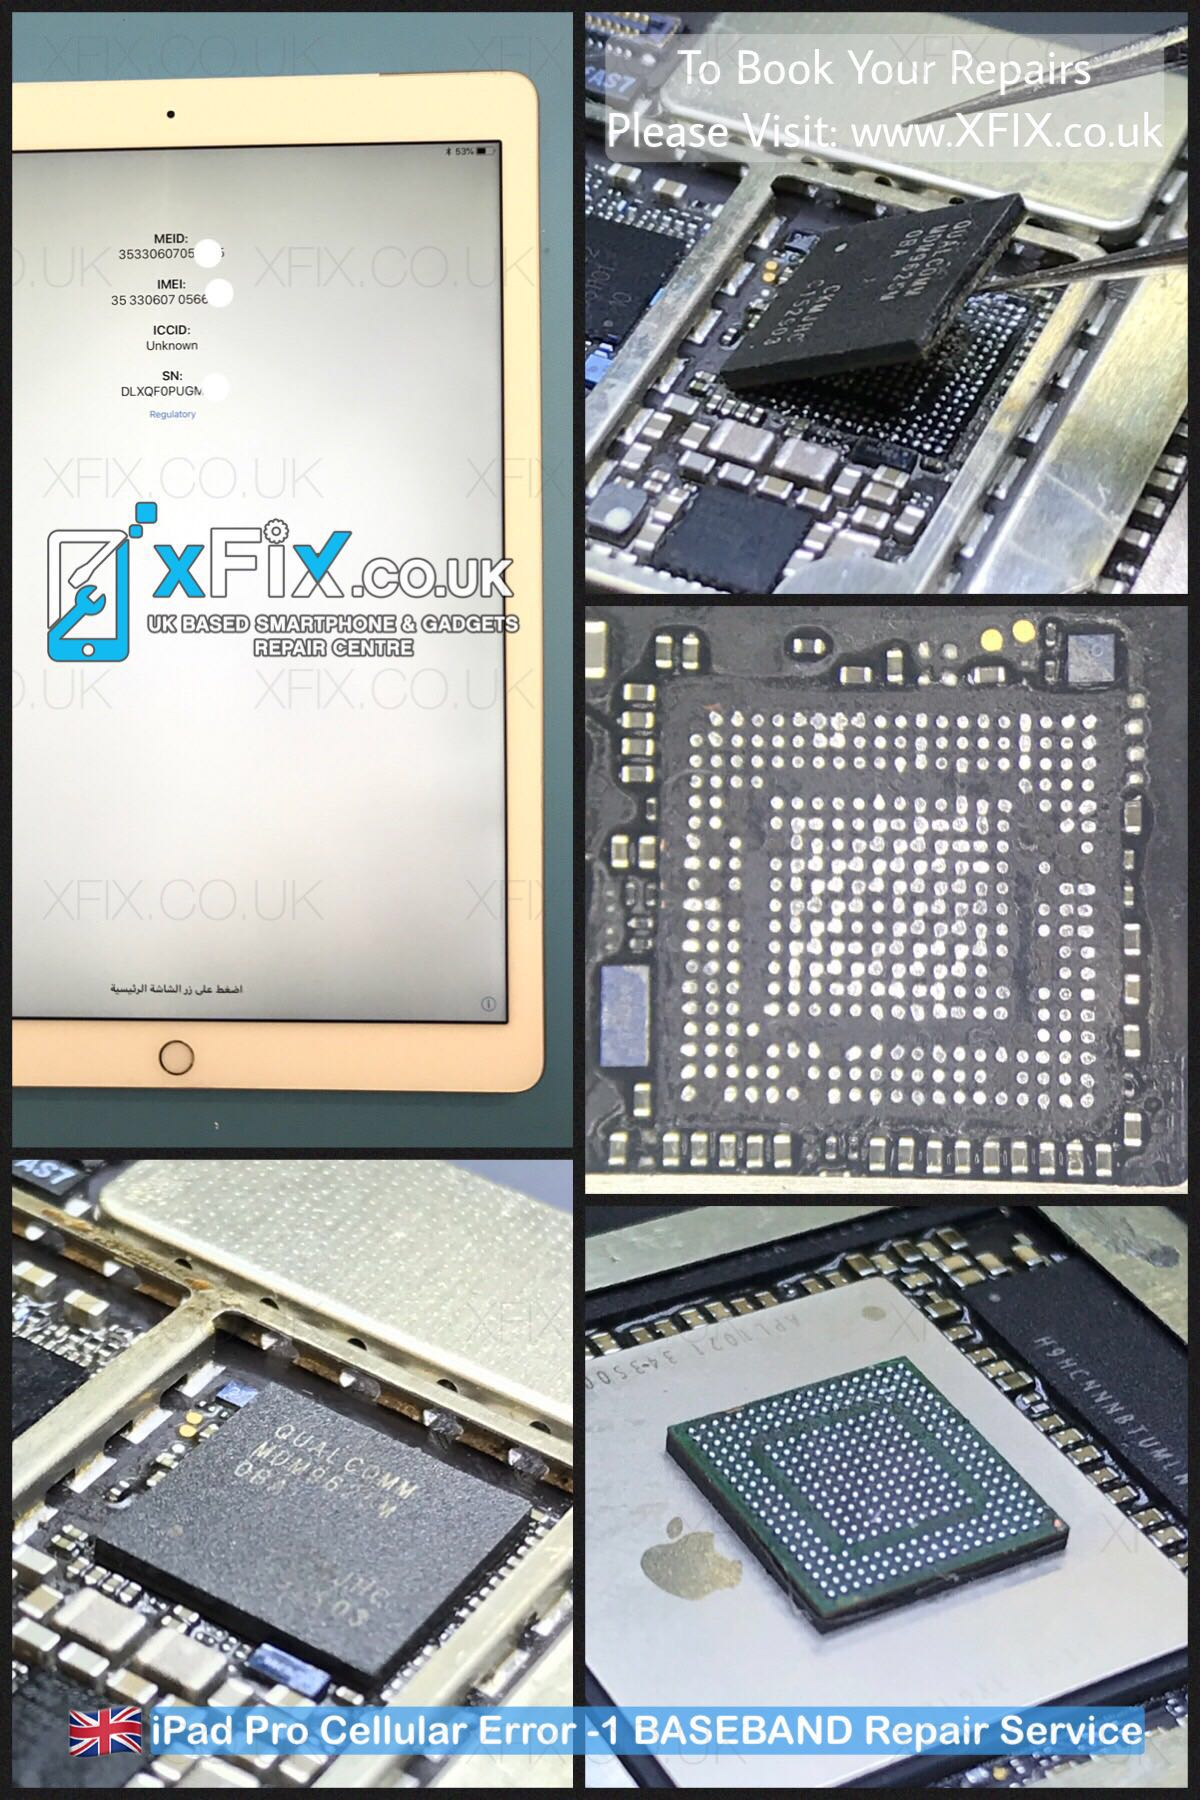 Fix iPad Pro 12 9 3G/Cellular Error -1 BASEBAND IC (Reballing)